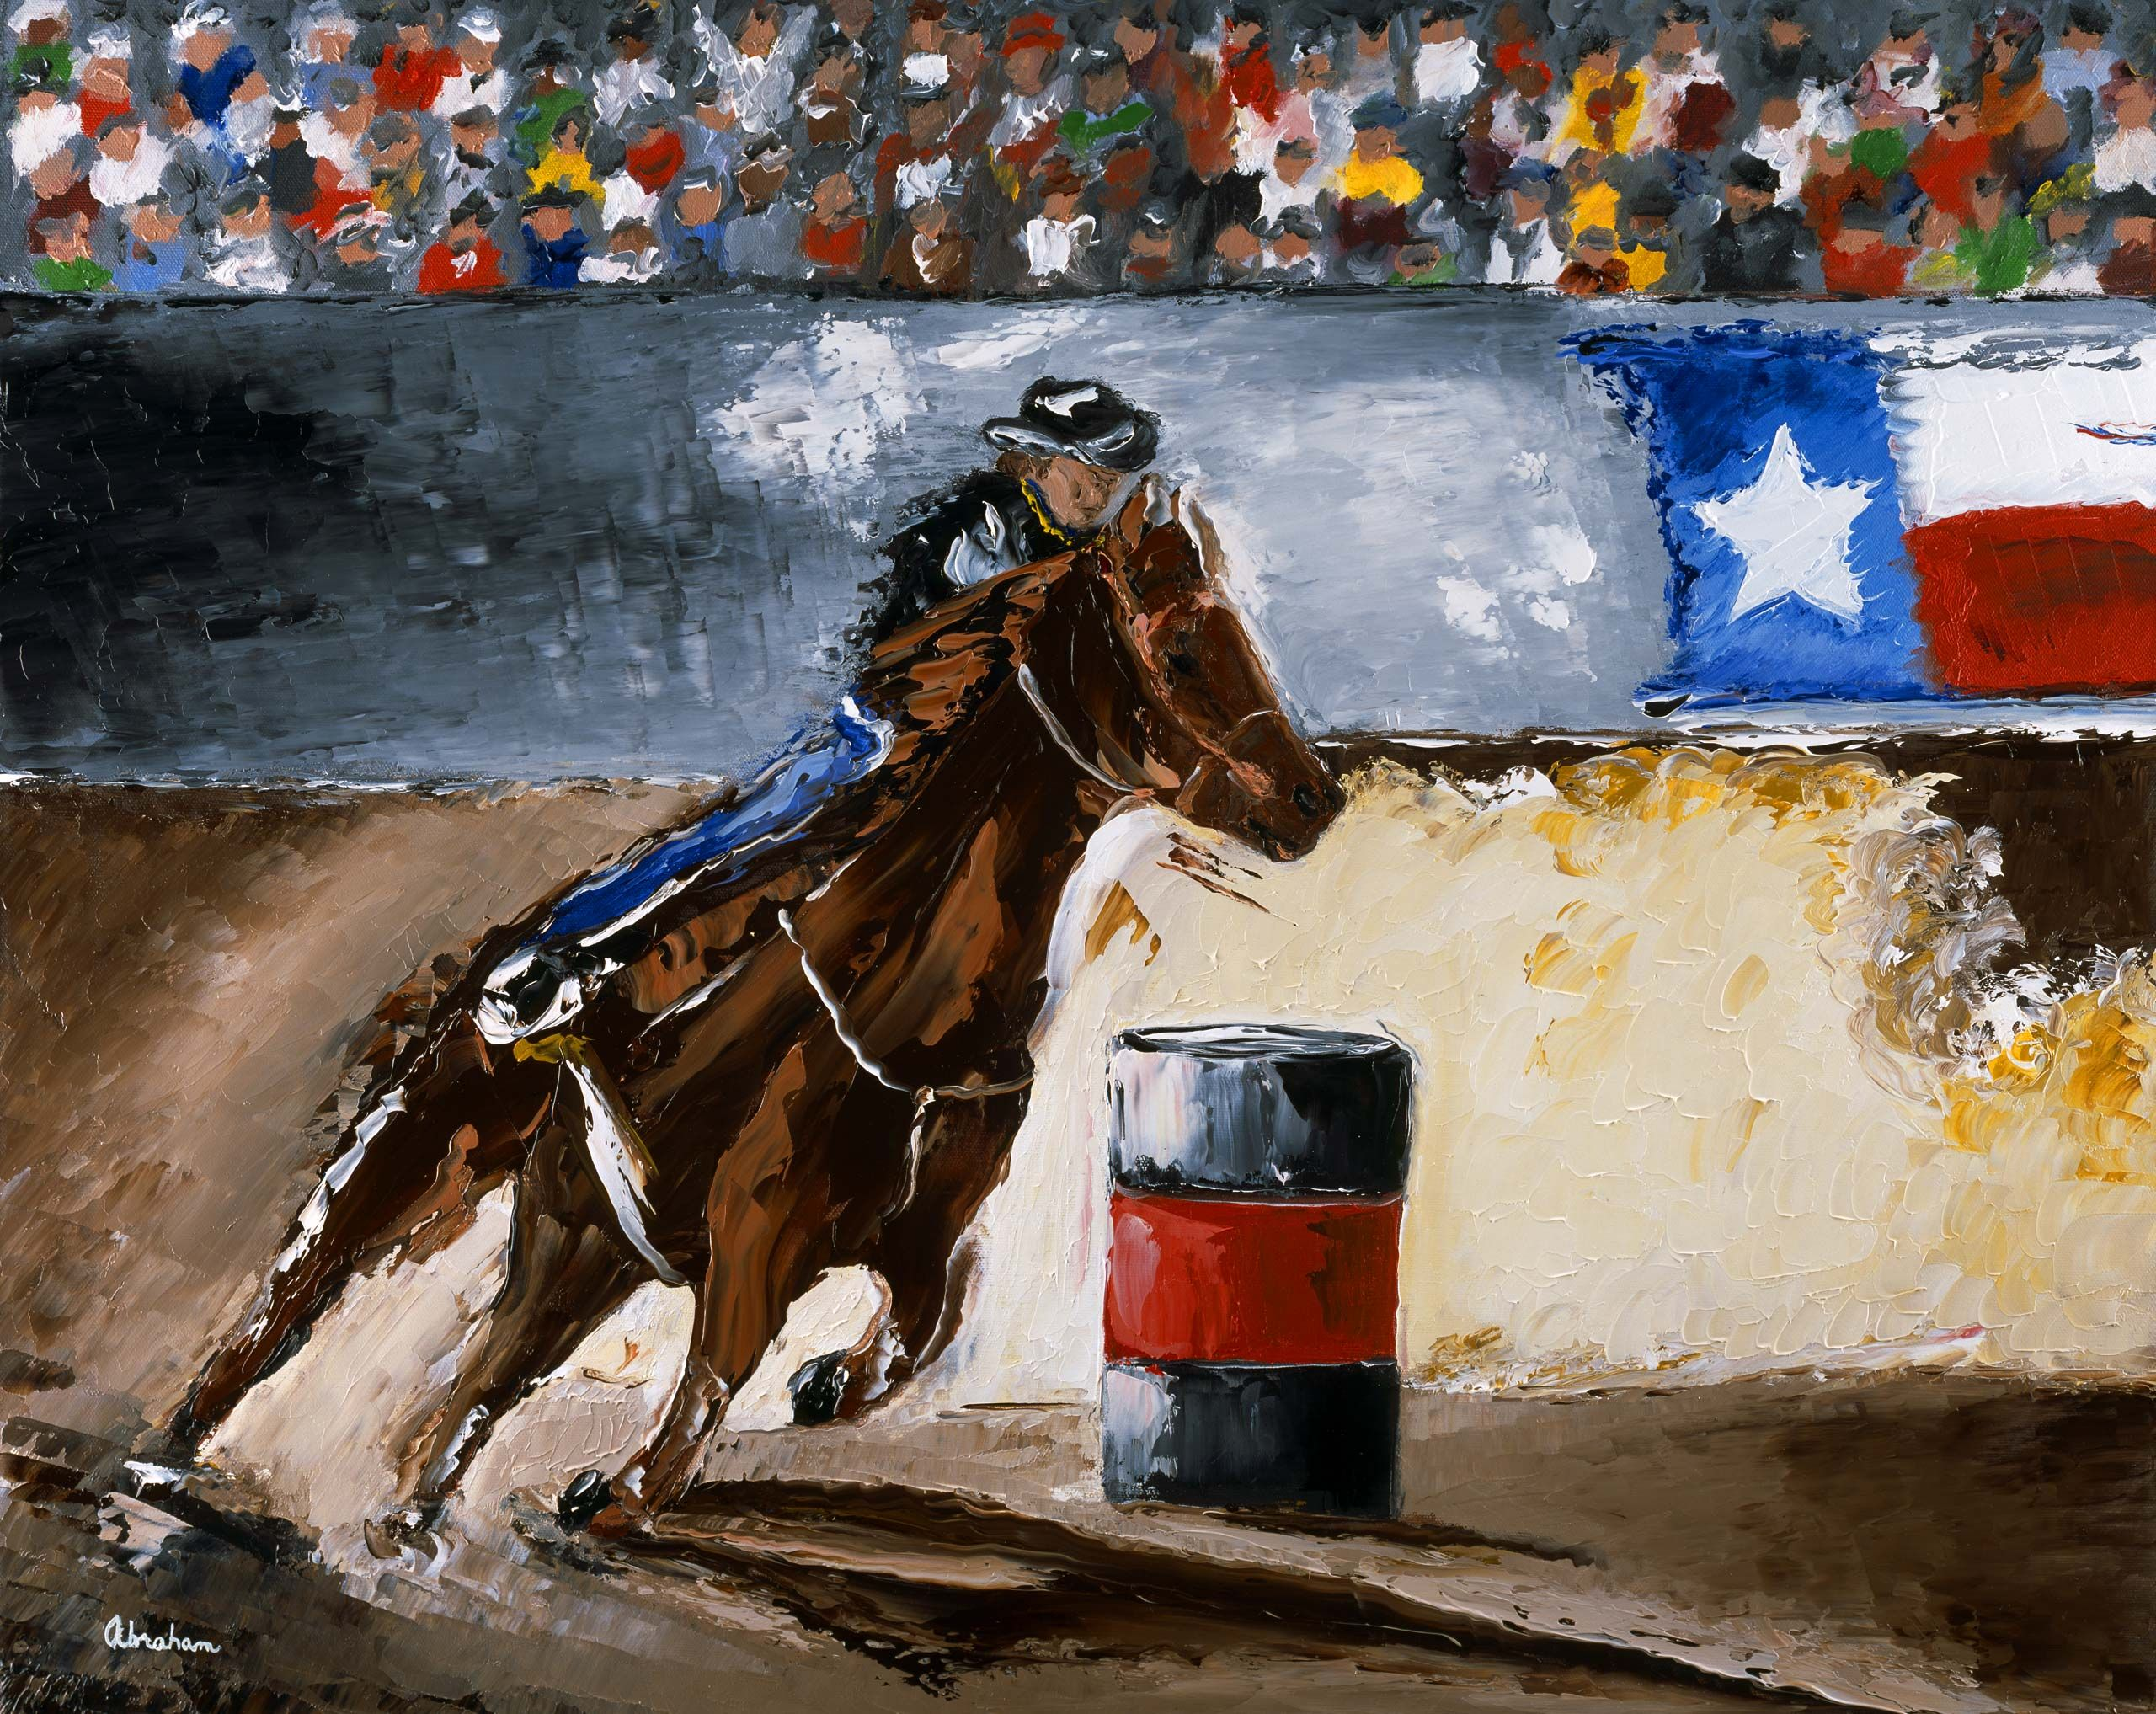 Barrel Run at the Rodeo